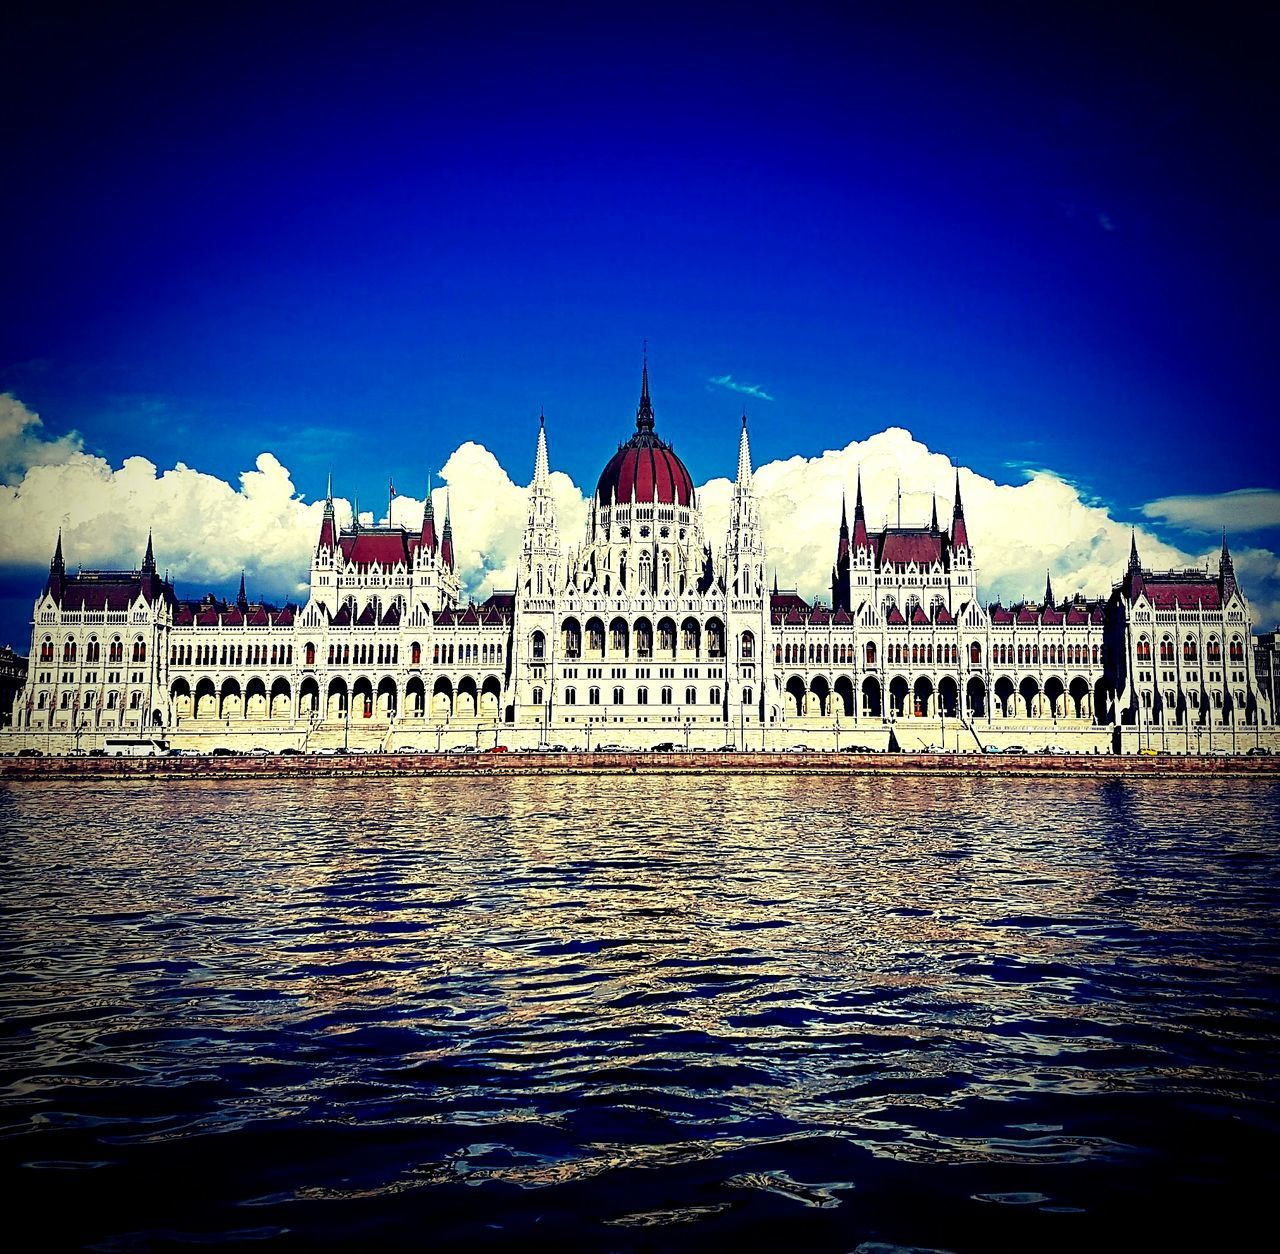 Water Architecture Sky Built Structure River Building Exterior City Outdoors Budapest Hungary Danube Danube River Parliament Europe My City City Life City View  Cityexplorer Discover Your City Explore Europe Trip Citytrip View Capital